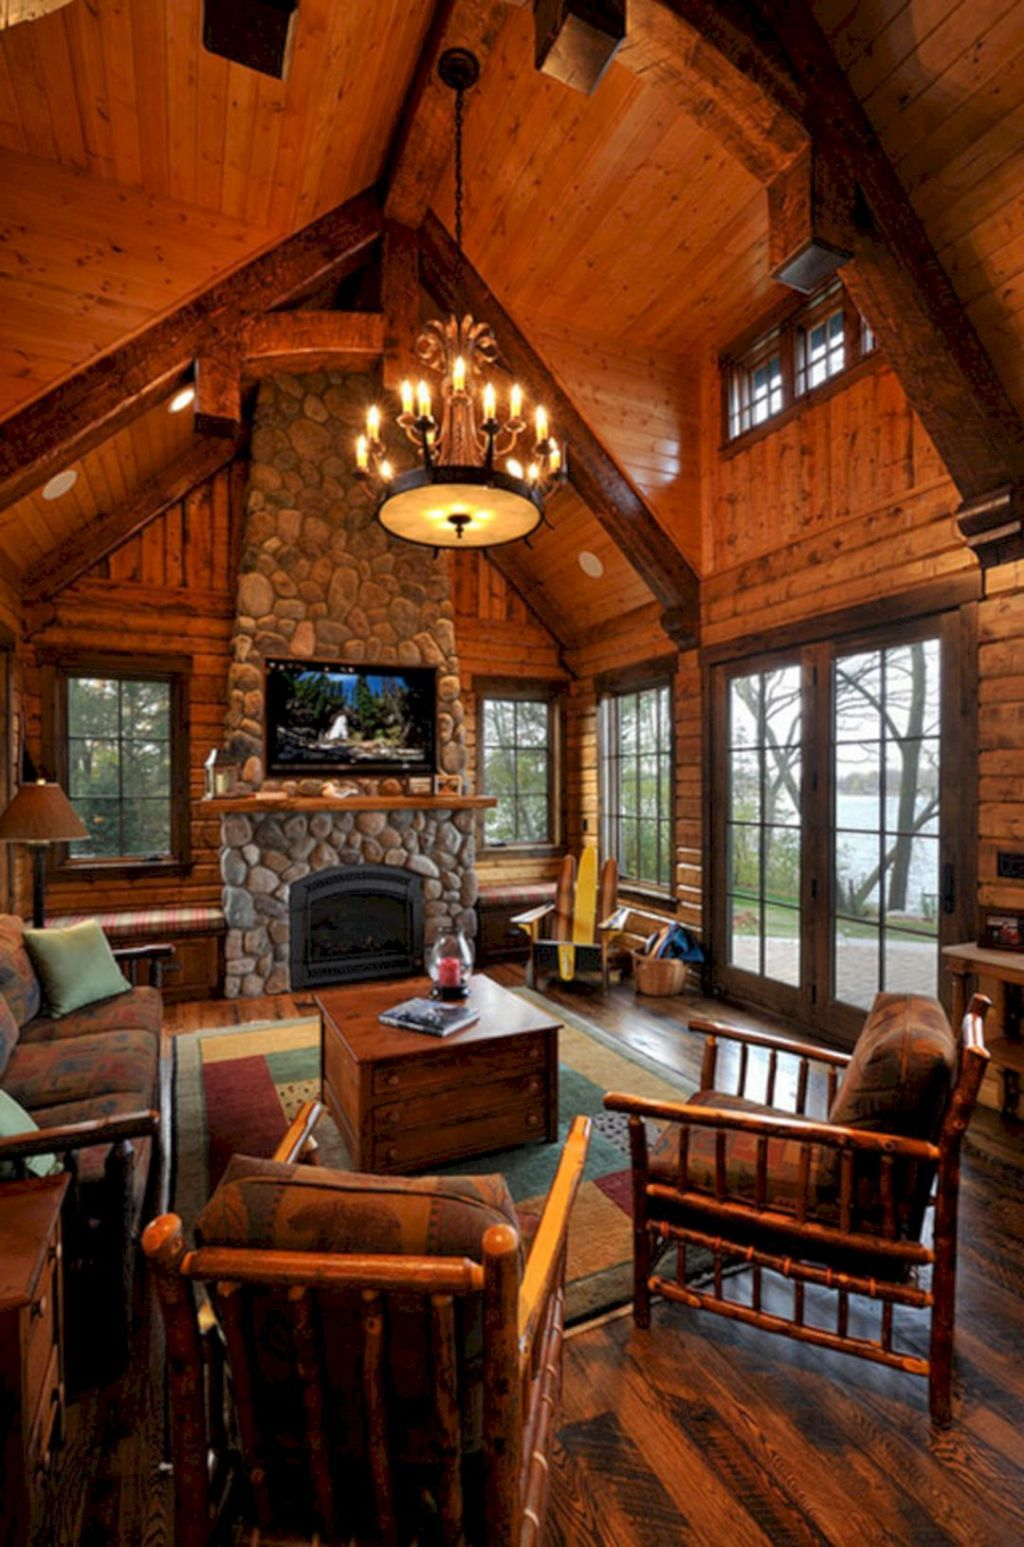 Best 10 Extremely Cozy And Gorgeous Log Cabin Style Home Interior Design 8 In 2020 Cabin Style Homes Cabin Interior Design Log Cabin Interior